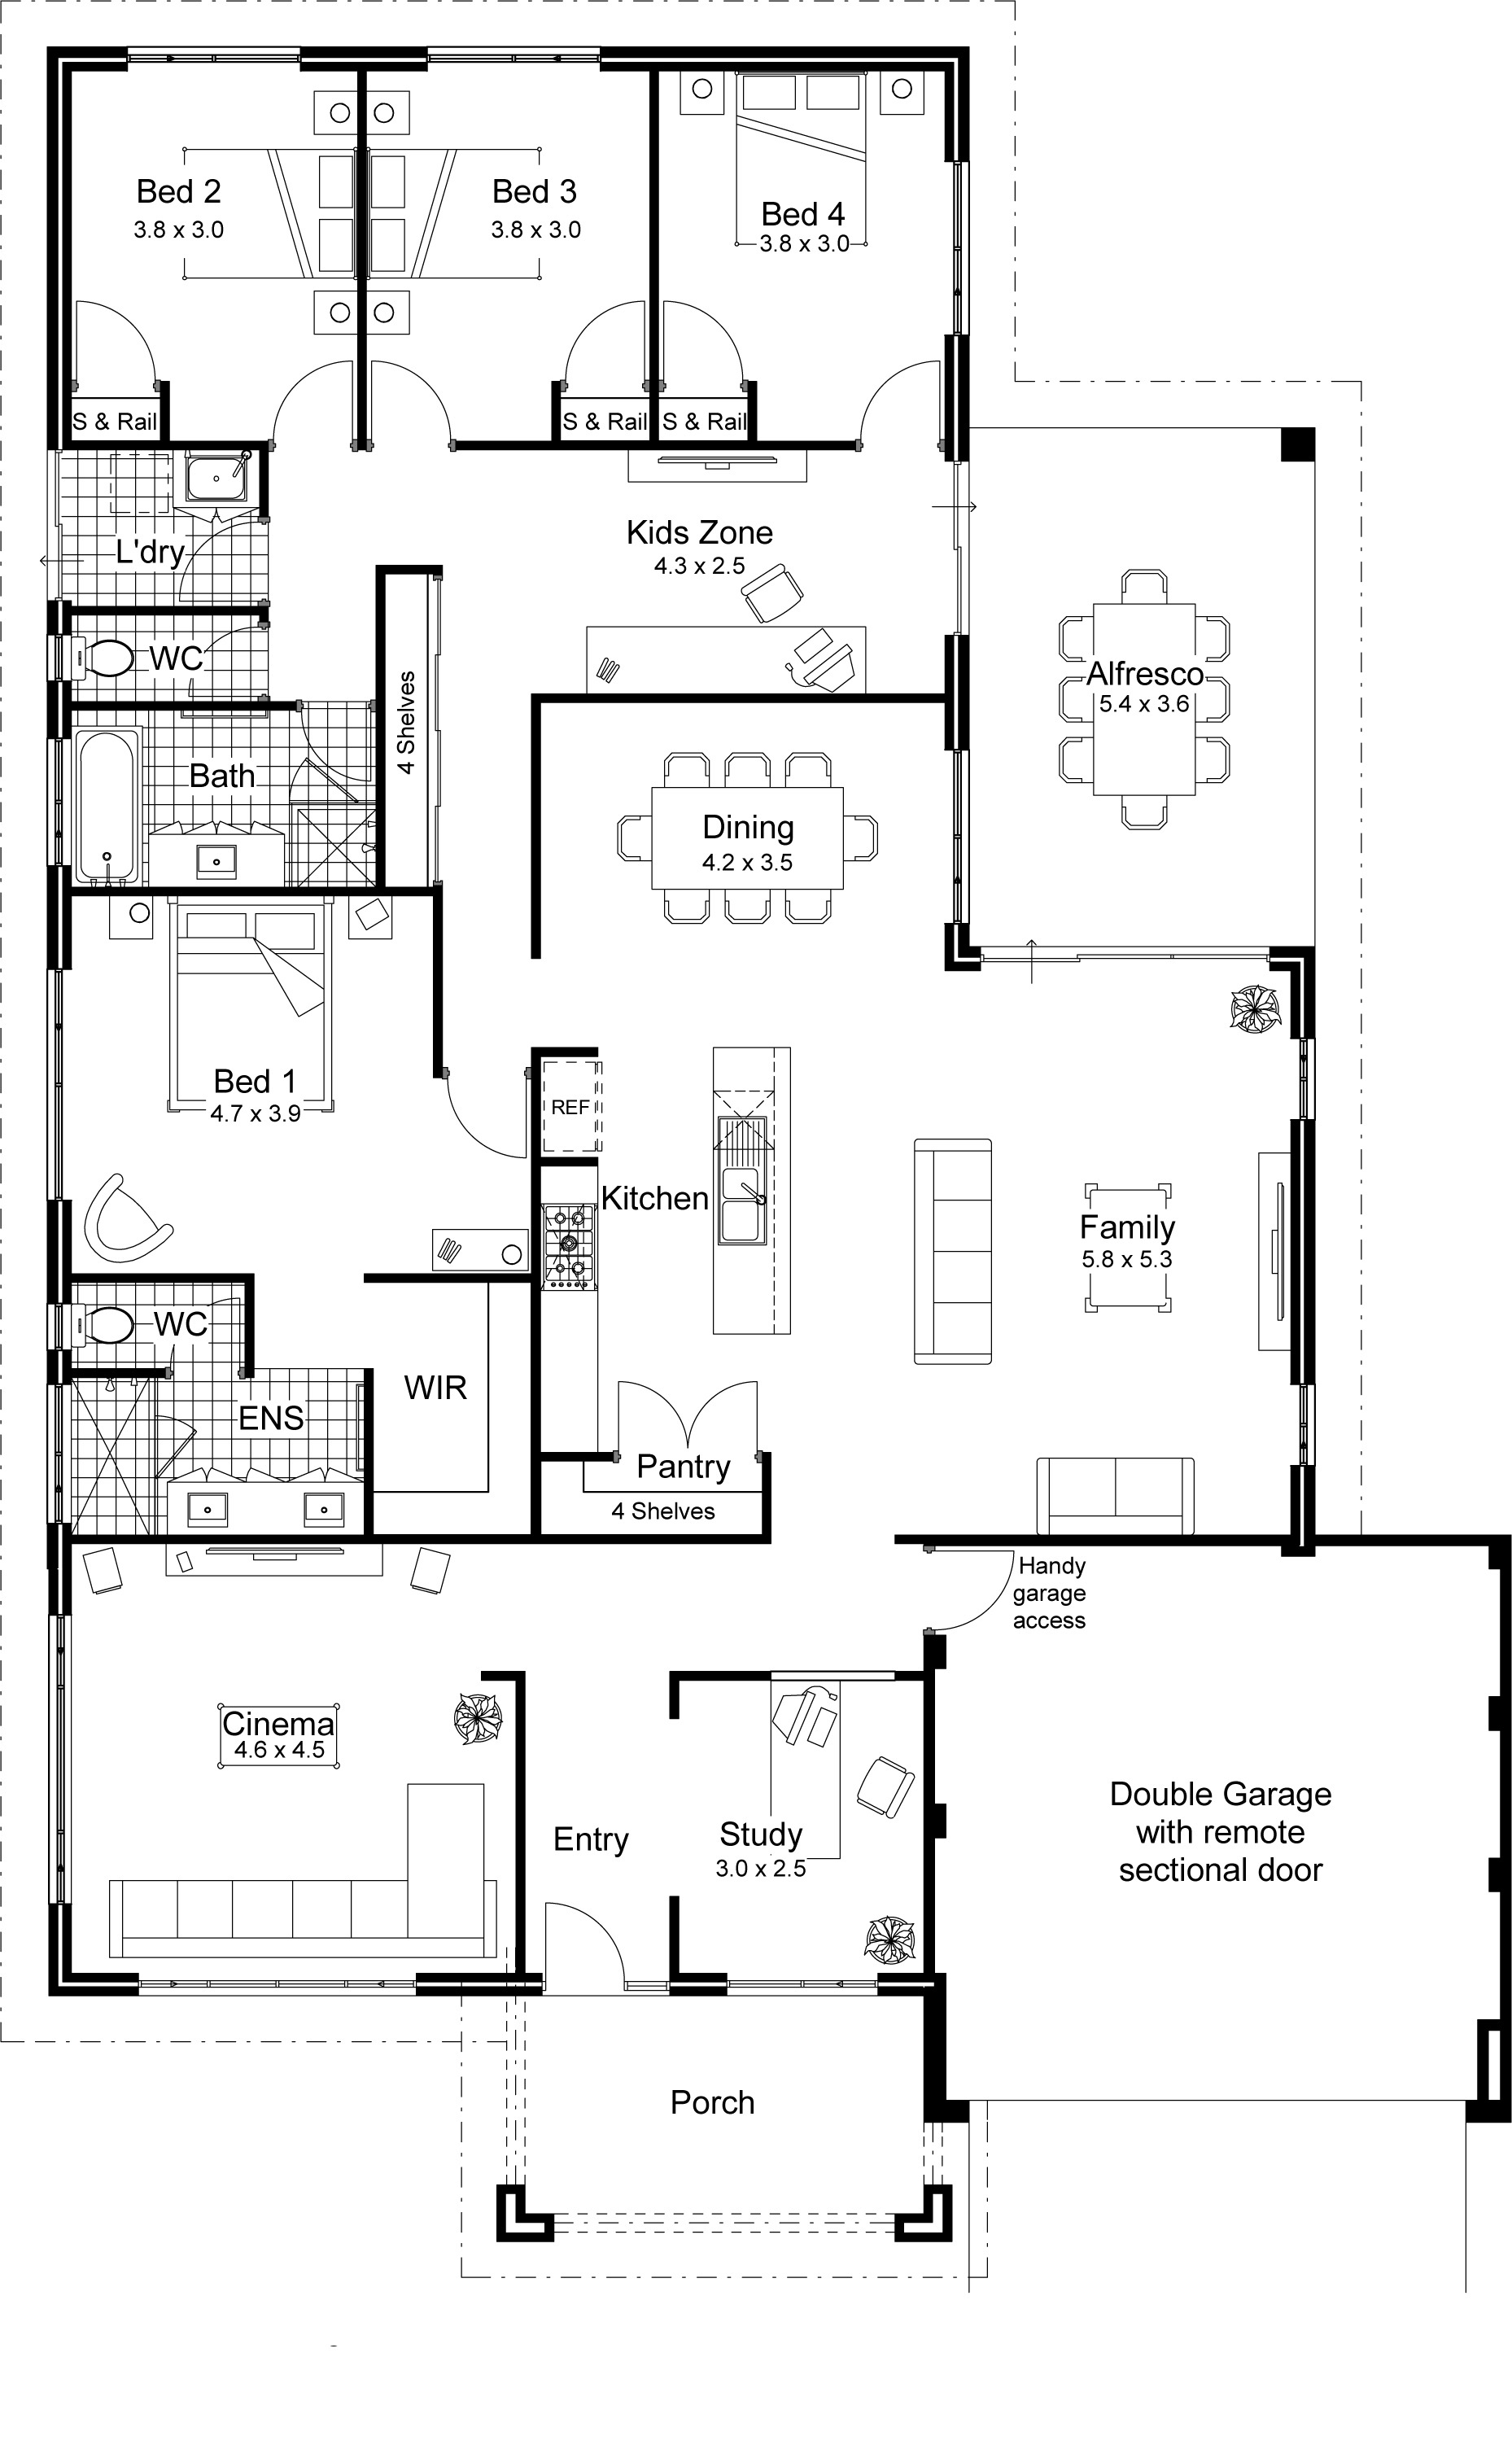 Best House Photo Gallery Inspirational Best House Plans Open Floor Plan Designs and Colors Modern